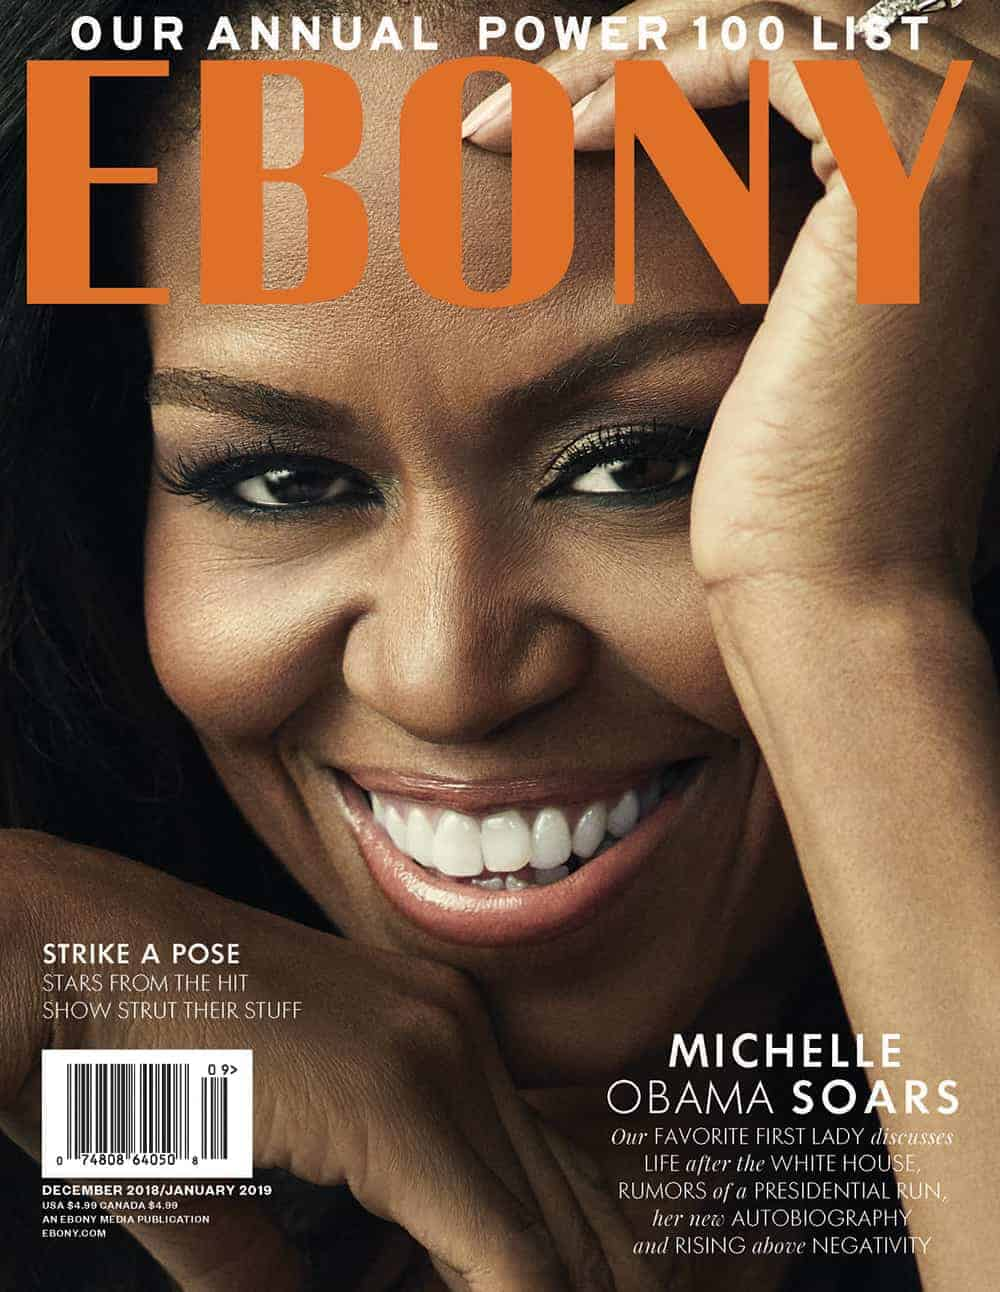 Image result for MICHELLE OBAMA EBONY MAGAZINE